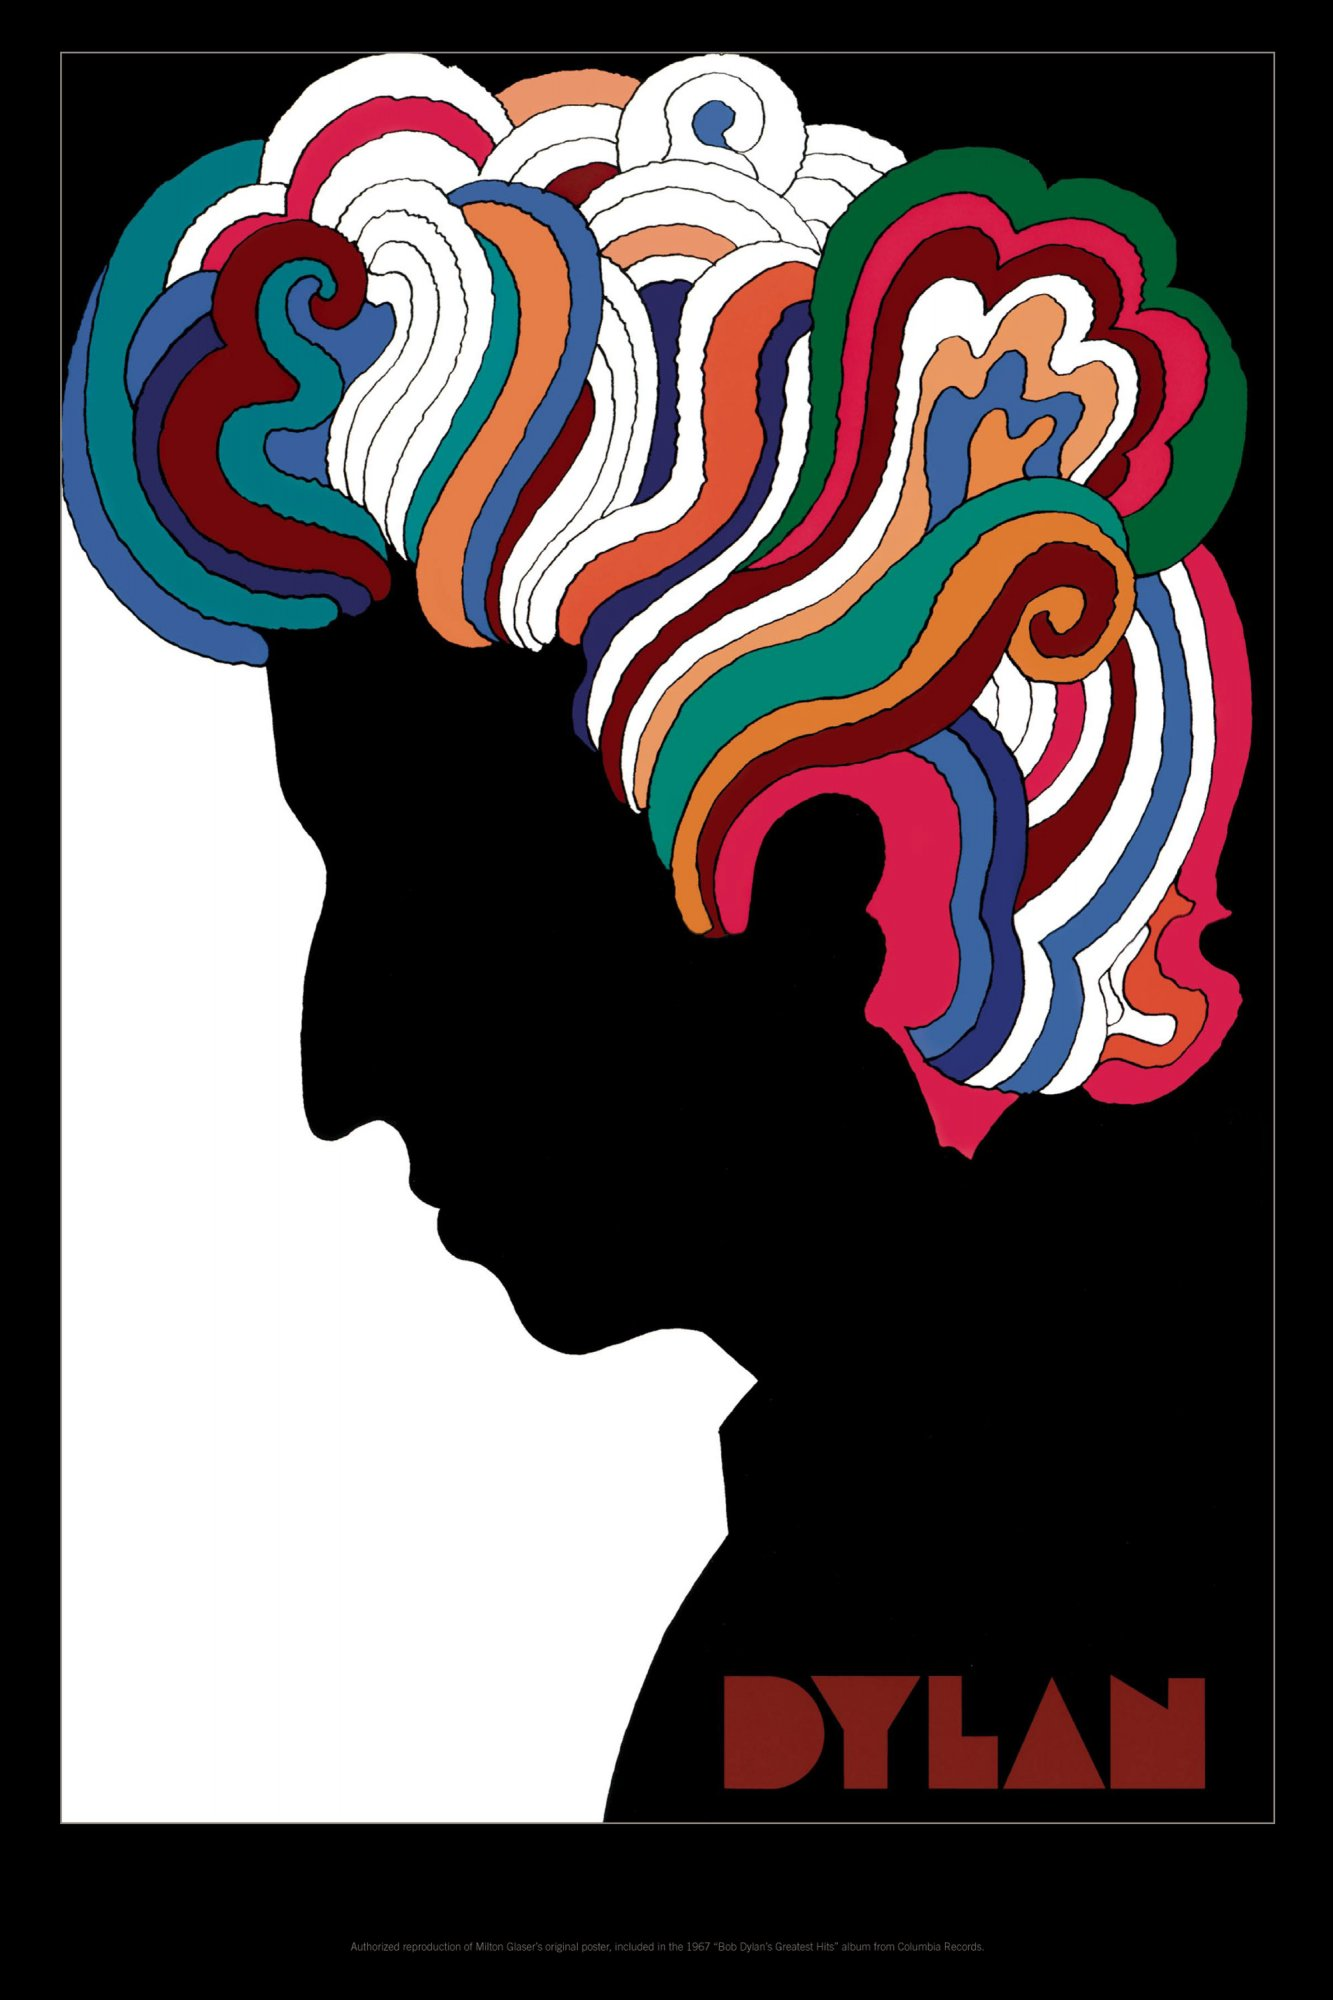 illustrational image of a man in profile with wild rainbow hair